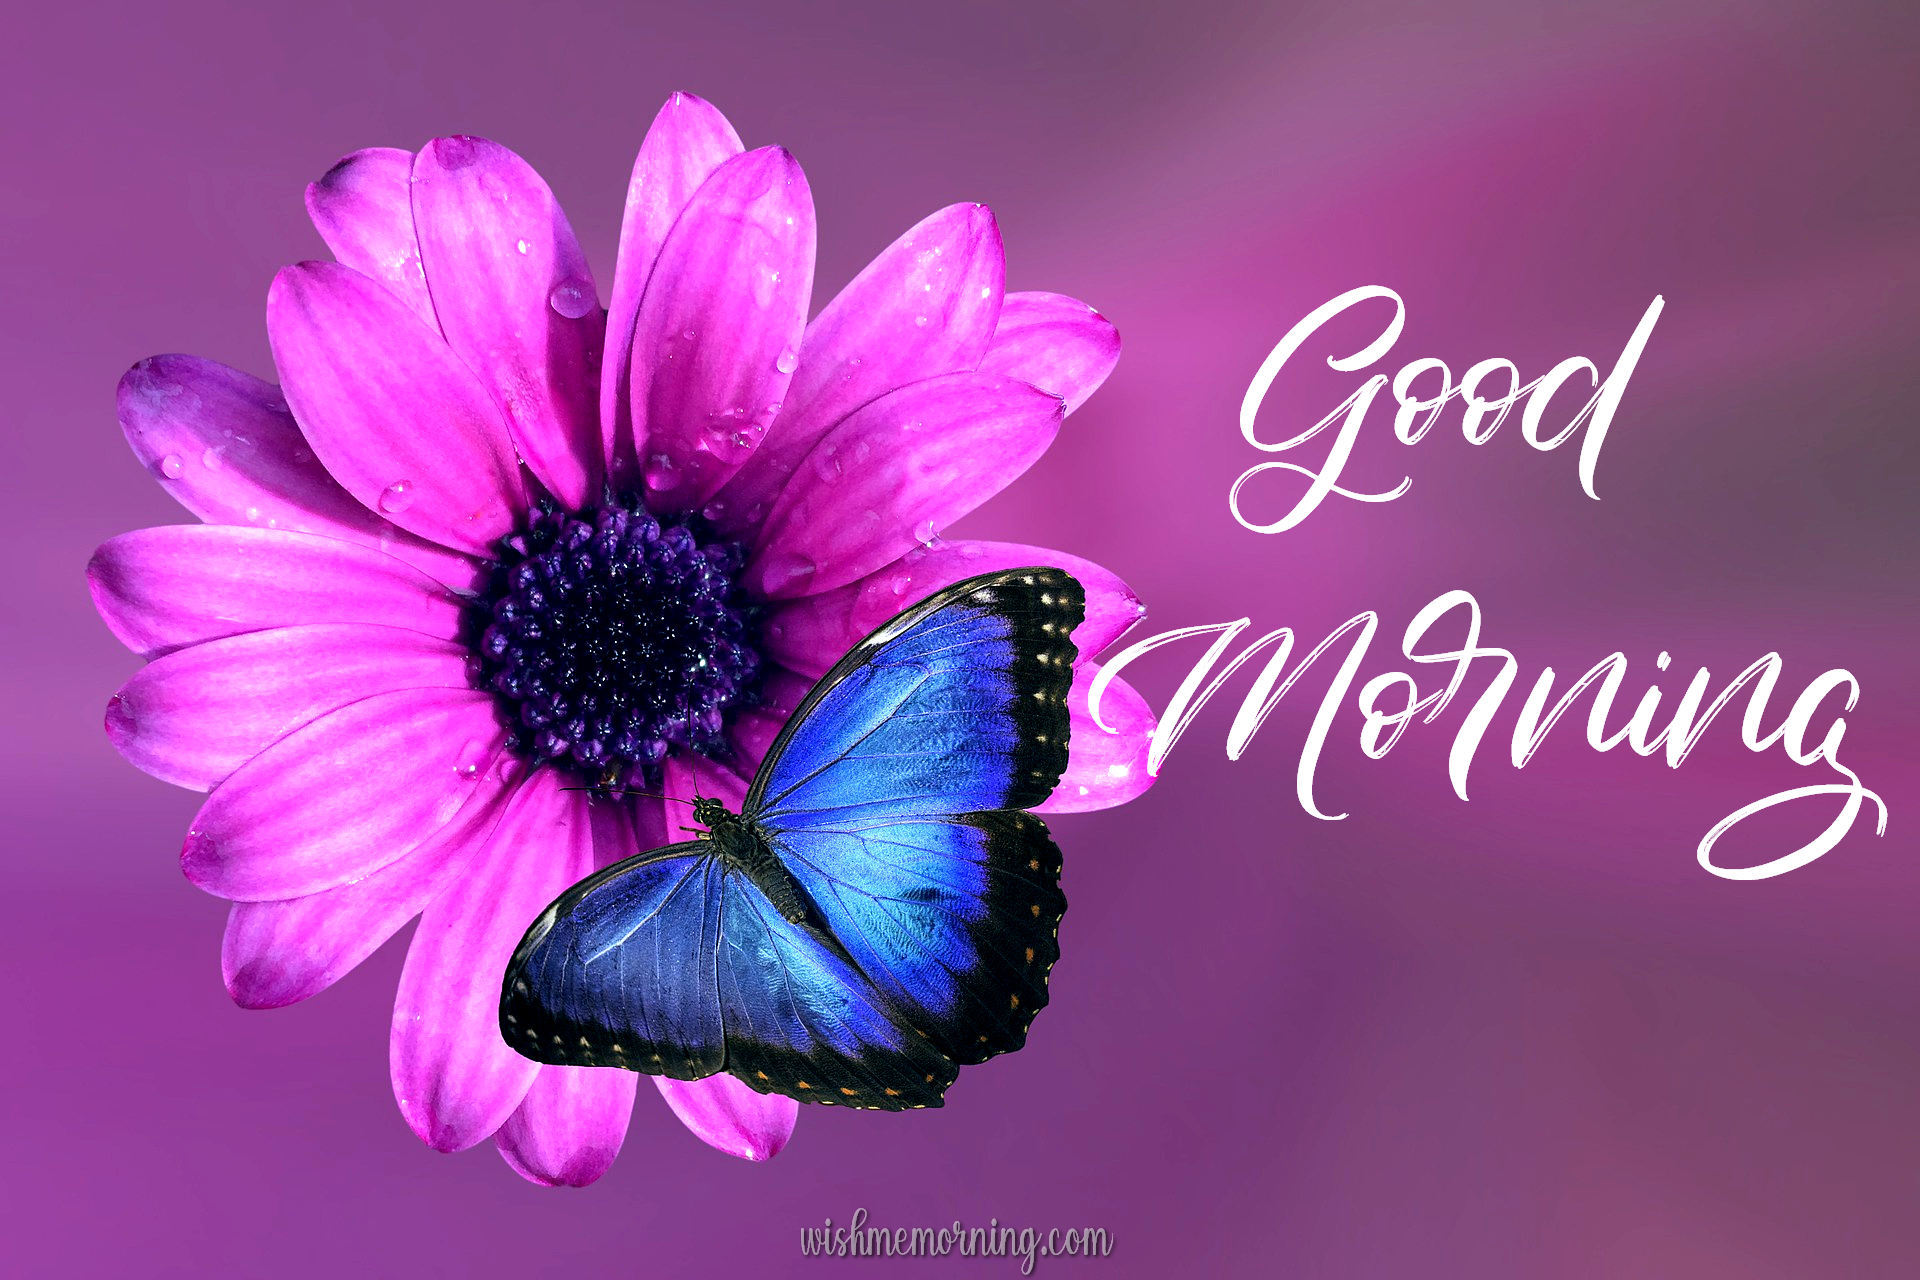 Beautiful Butterfly Good Morning Images wishmemorning.com 21